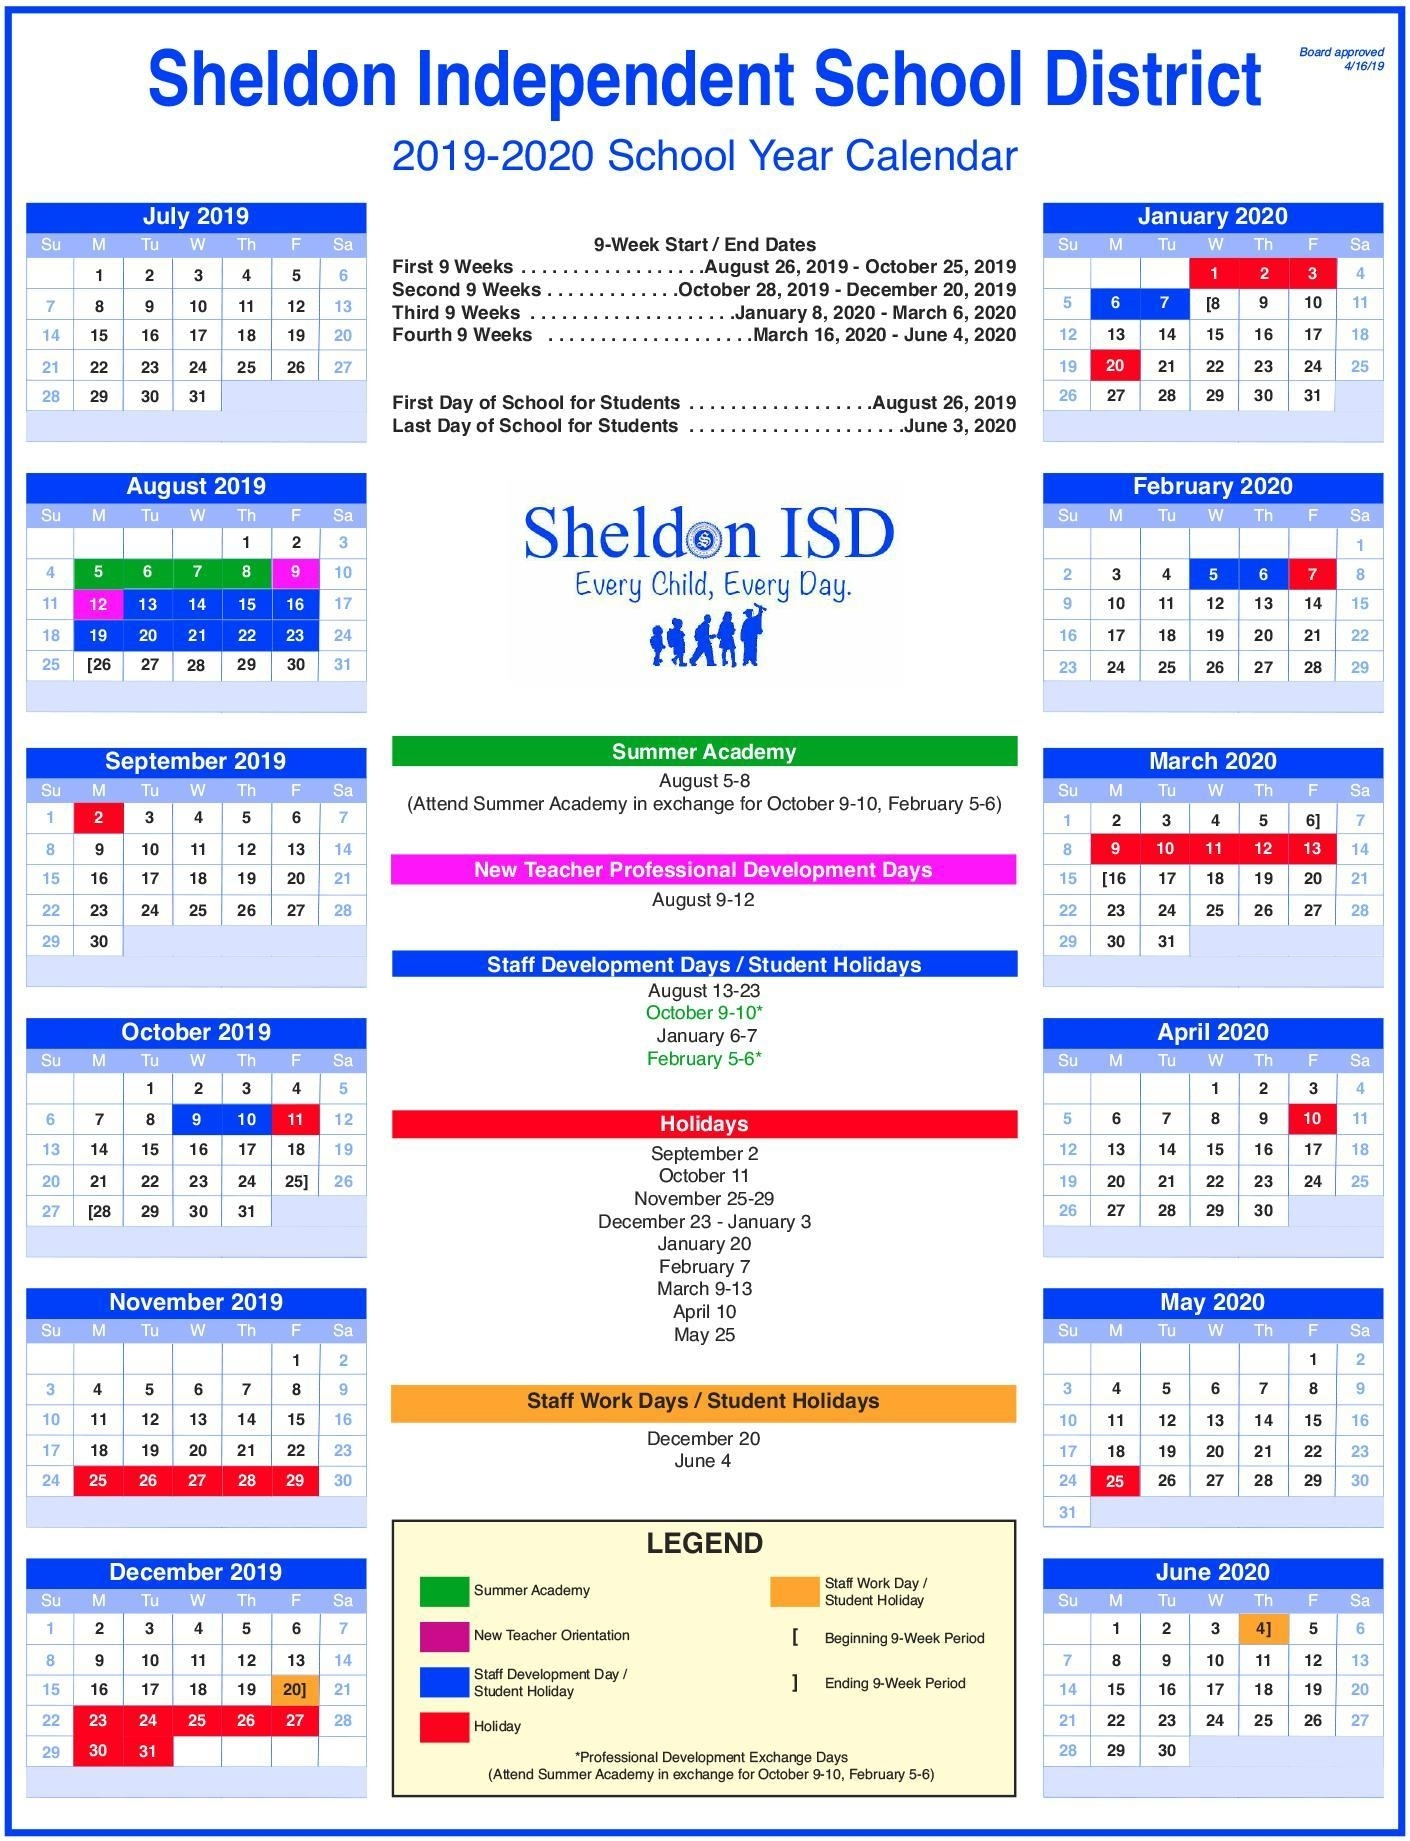 Sheldon Isd for U Of M School Year 2019-2020